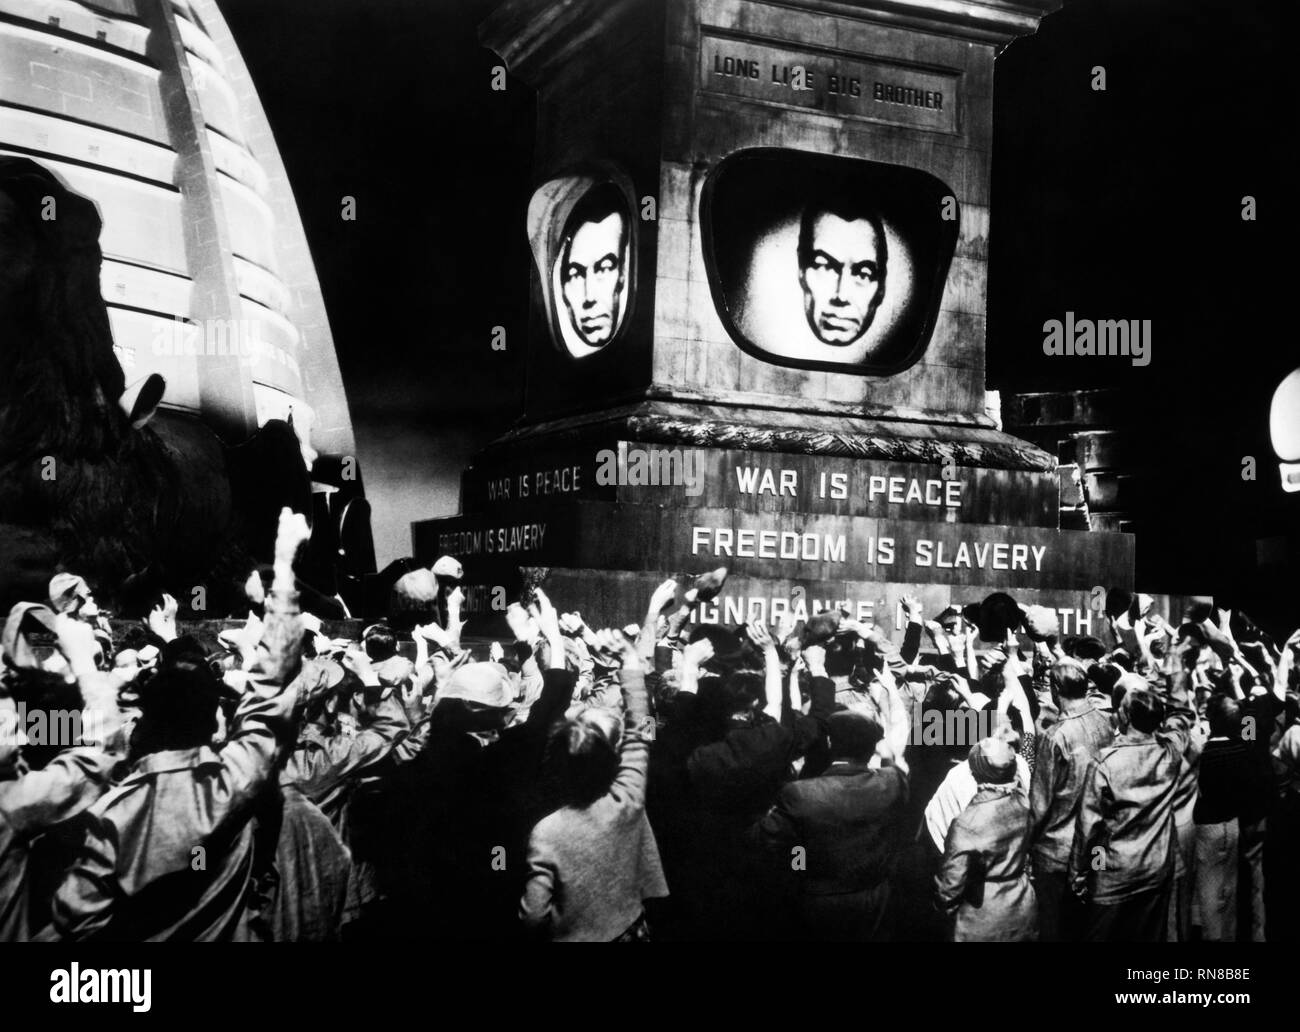 BIG BROTHER IS WATCHING SCREEN, 1984, 1956 Stock Photo